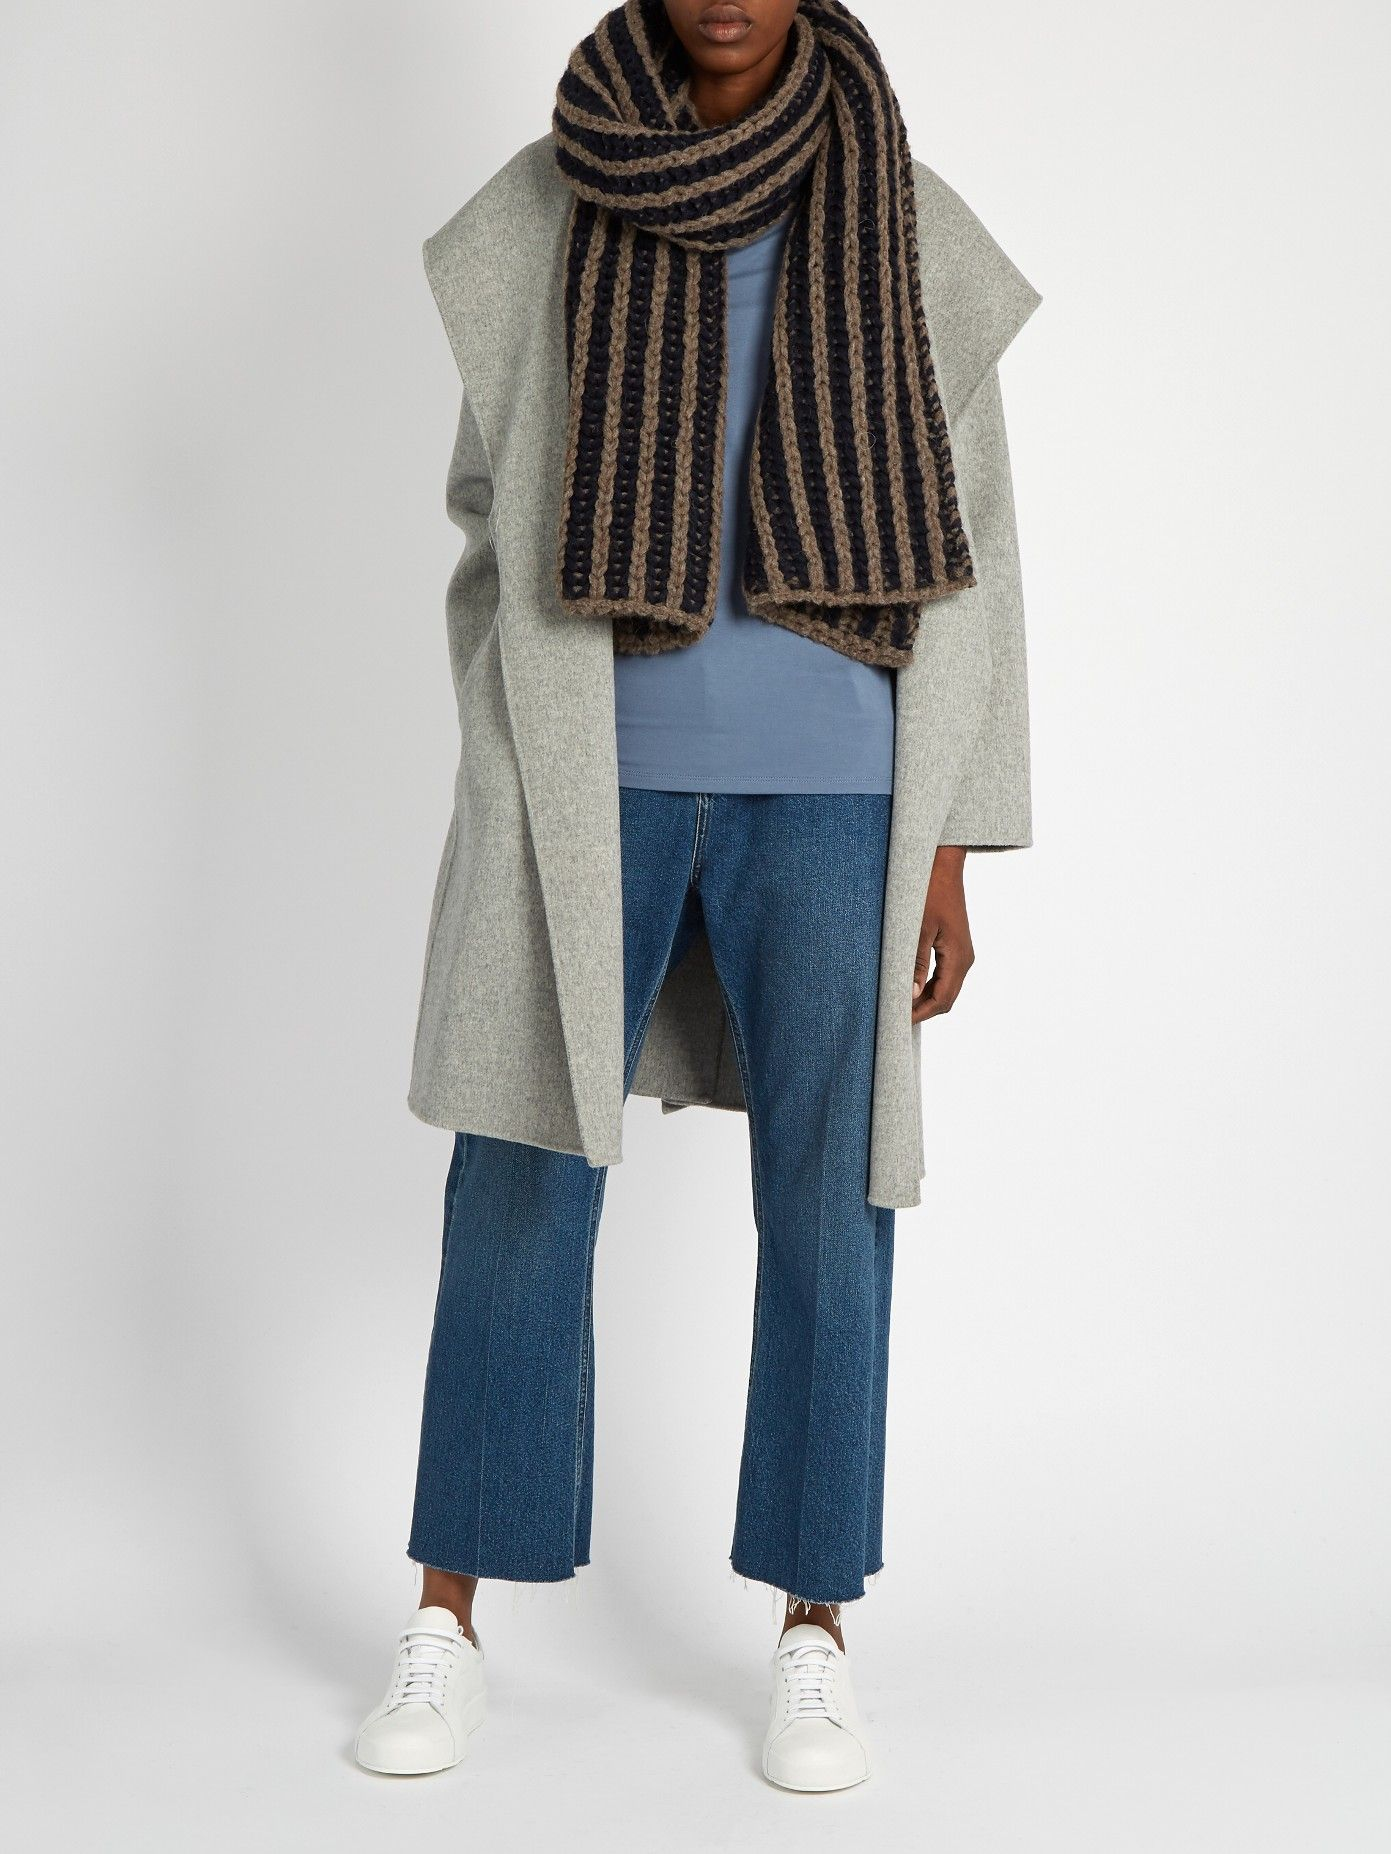 Bronte scarf | Weekend Max Mara | MATCHESFASHION.COM